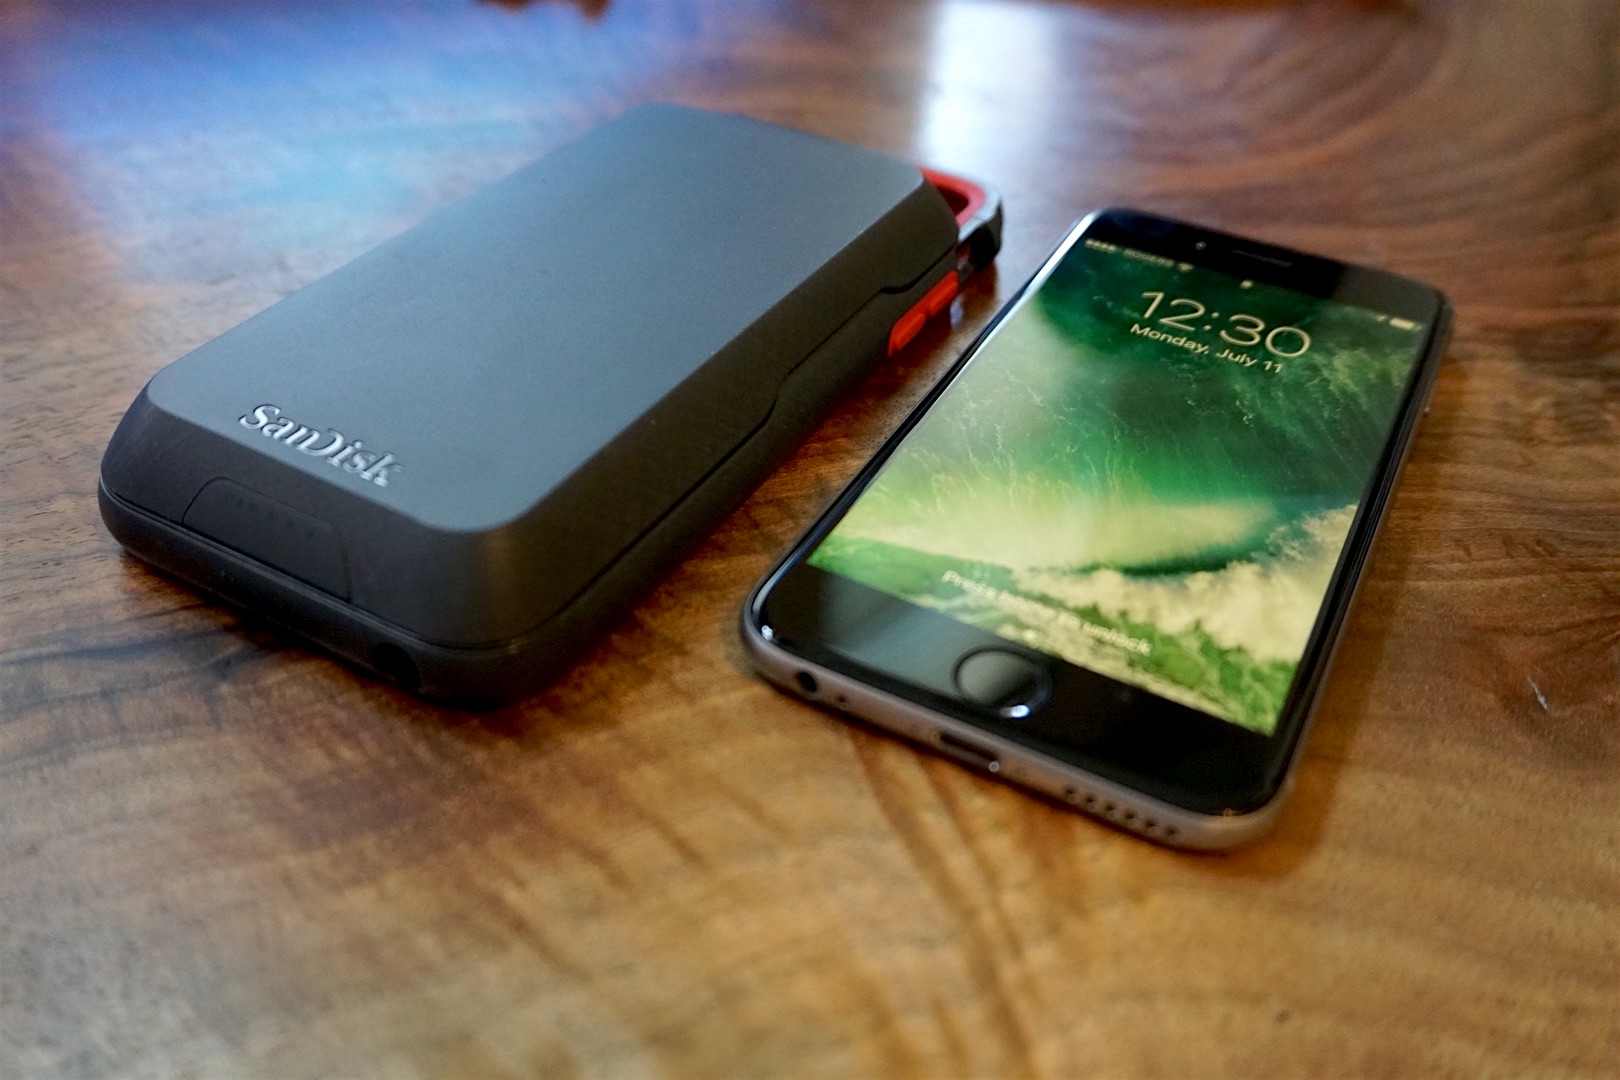 online store 99293 cd1f5 Review: SanDisk's iXpand Memory Case adds up to 128GB storage ...